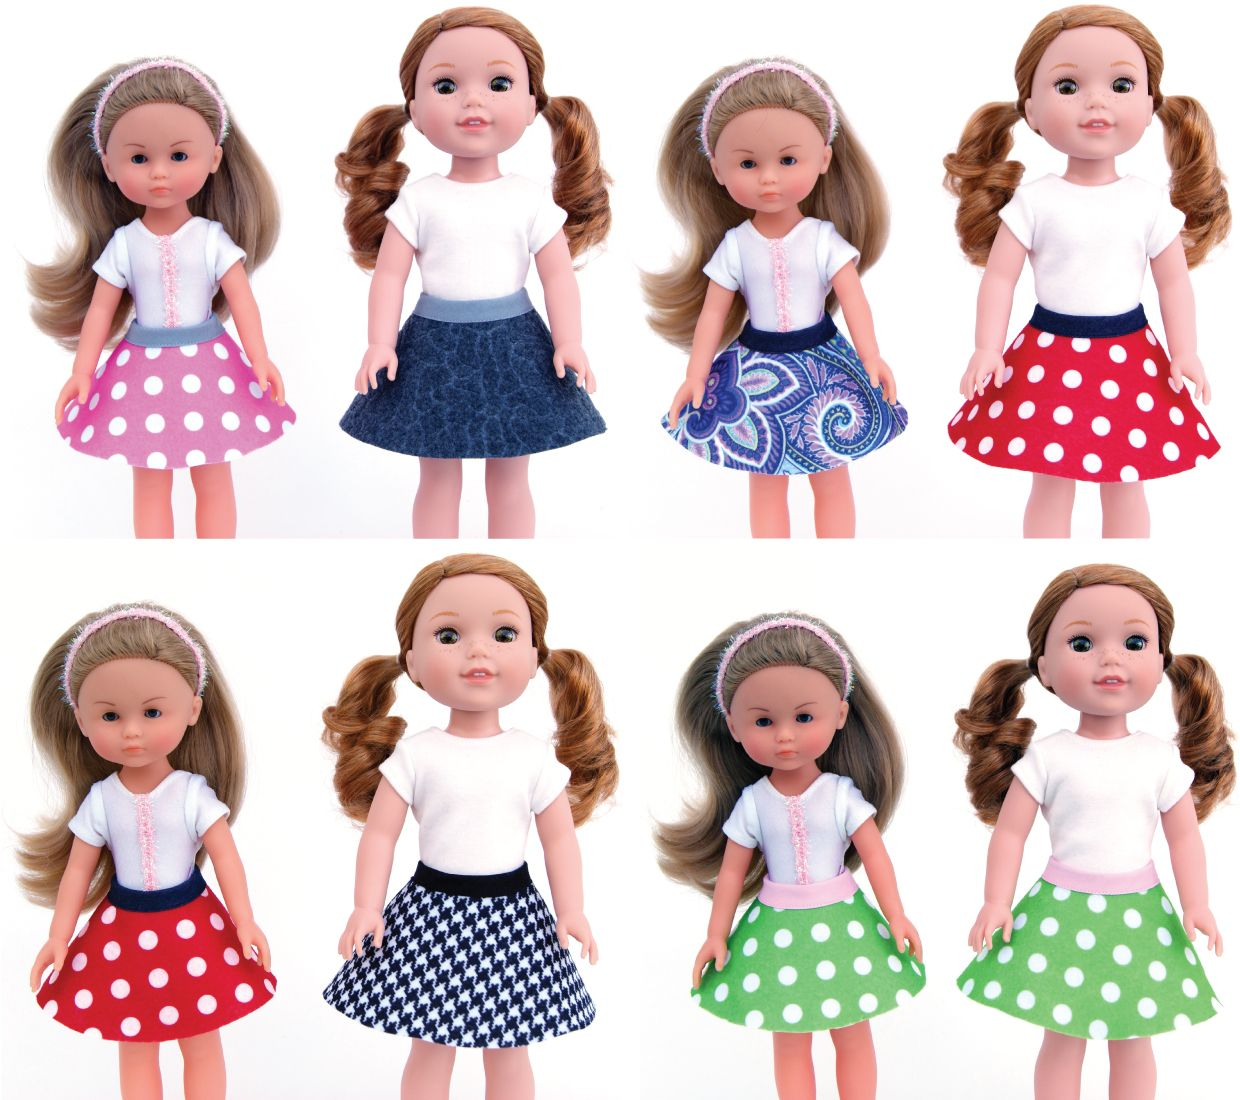 Free Pattern For 13 And 14 5 Inch Doll Skirts Dolls Clothes Diy American Girl Doll Patterns Baby Doll Clothes